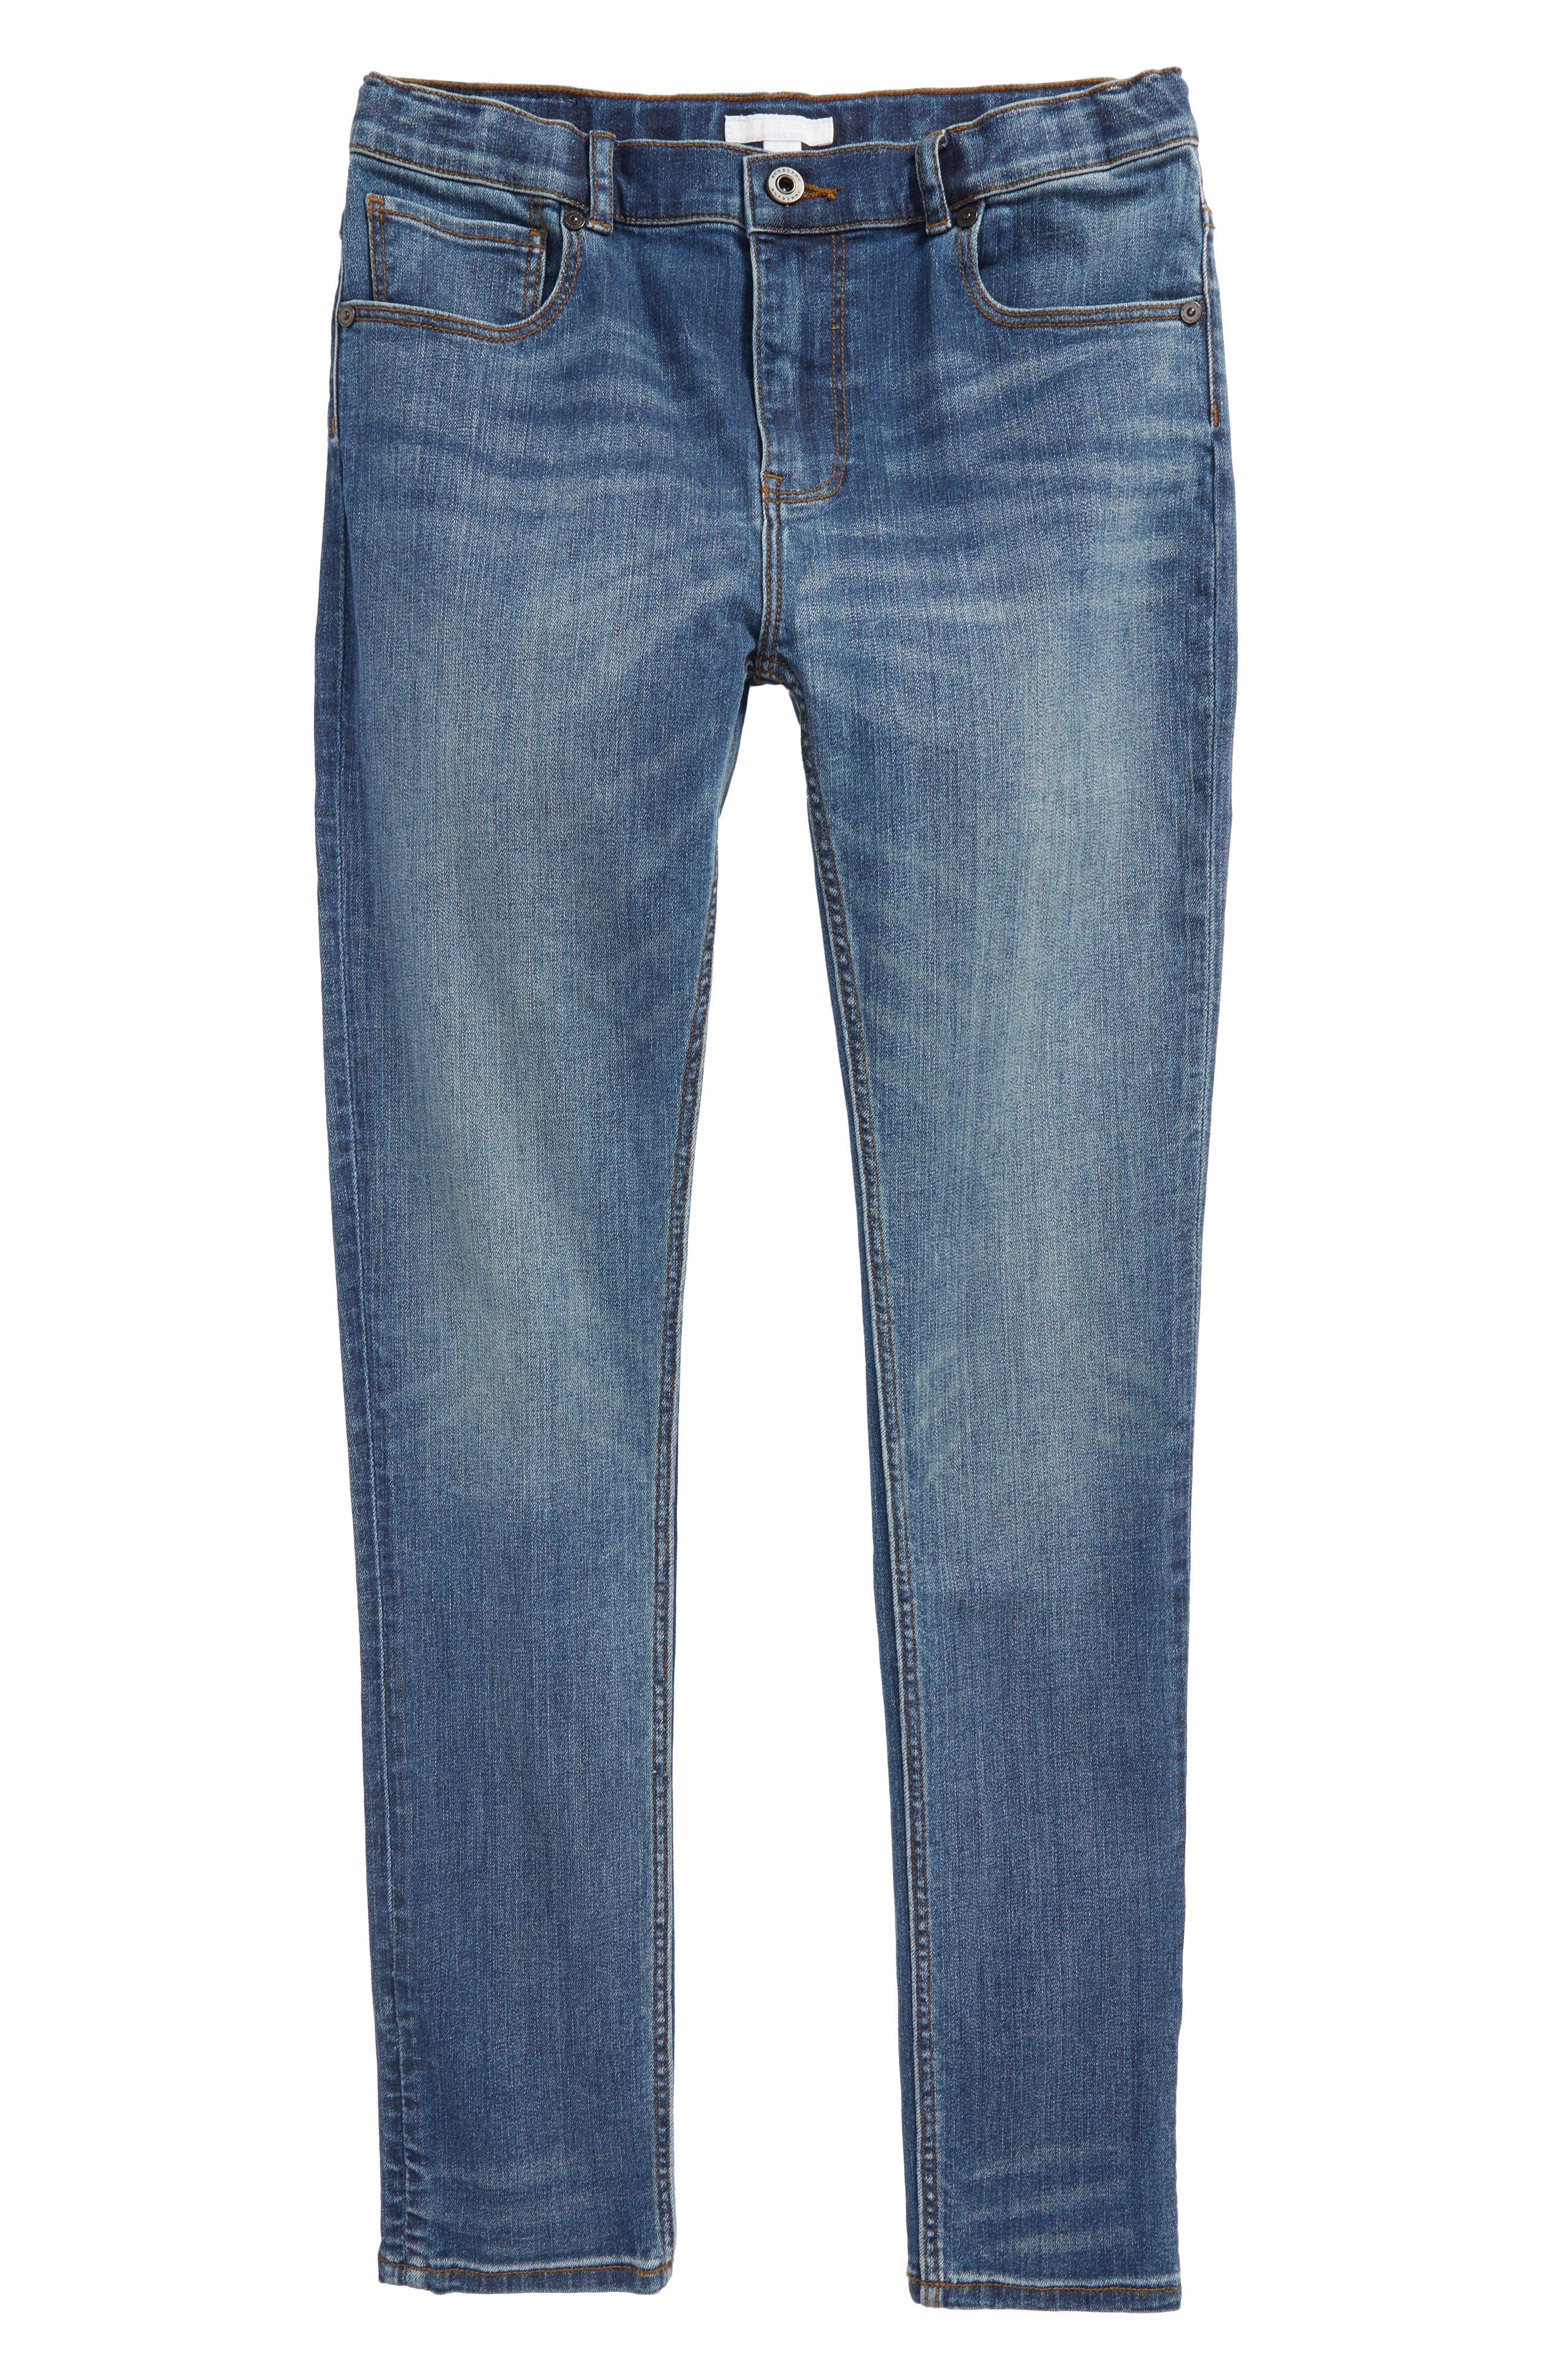 BURBERRY Skinny Jeans, Main, color, MEDIUM INDIGO